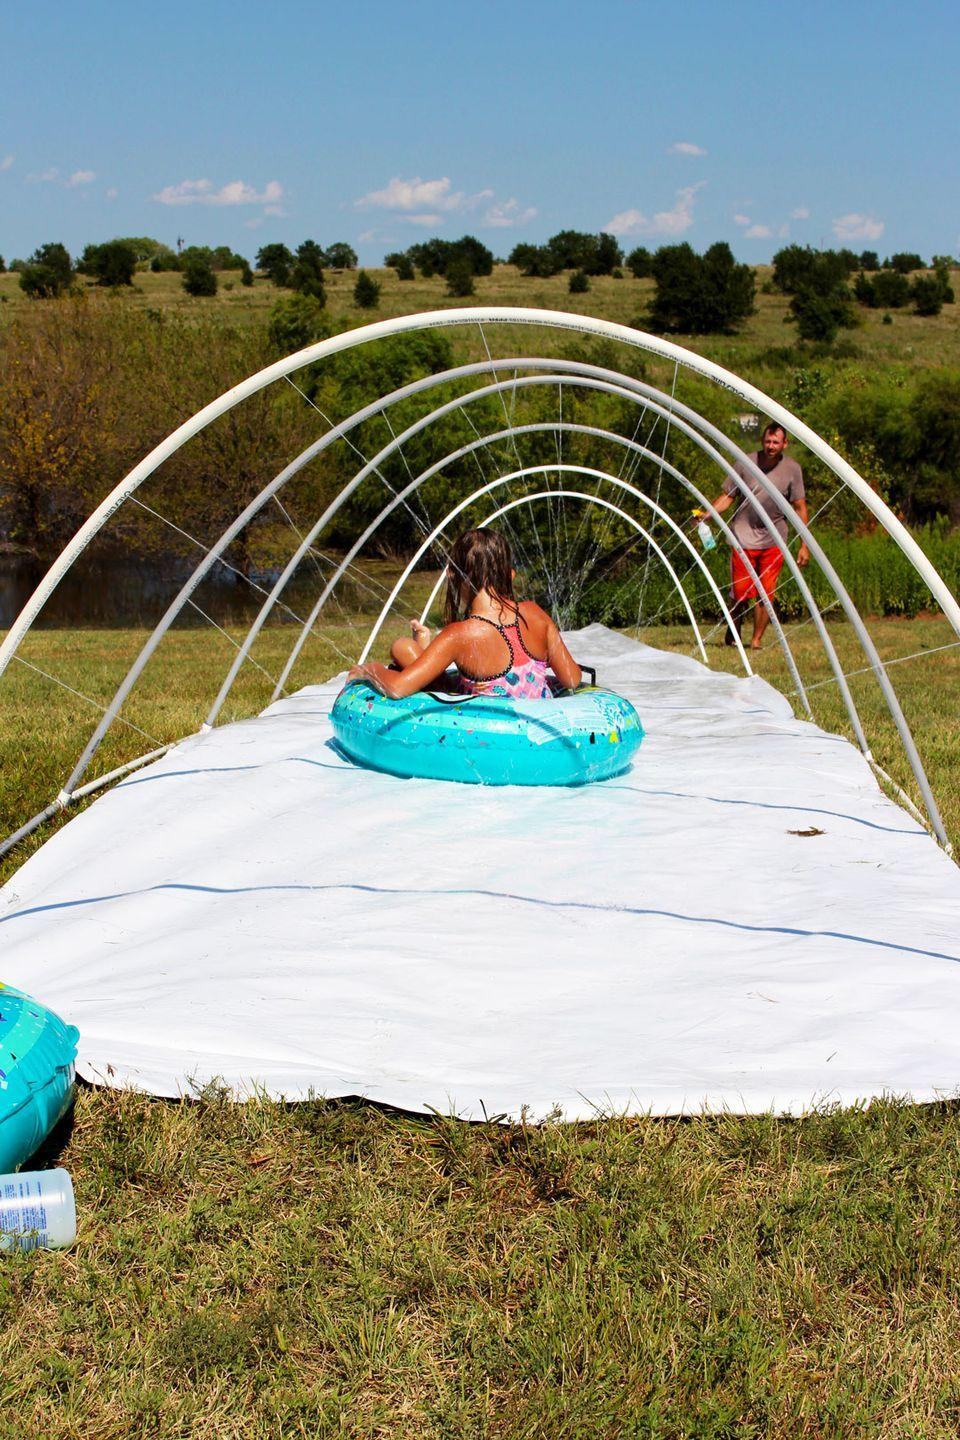 """<p>Keep this idea on hand for a hot summer day. Break out the hose and send the kids down with a splash! </p><p><strong>See more at <a href=""""https://welcometonanas.com/amazing-diy-slip-n-slide/"""" rel=""""nofollow noopener"""" target=""""_blank"""" data-ylk=""""slk:Welcome to Nana's"""" class=""""link rapid-noclick-resp"""">Welcome to Nana's</a>. </strong></p><p><a class=""""link rapid-noclick-resp"""" href=""""https://go.redirectingat.com?id=74968X1596630&url=https%3A%2F%2Fwww.walmart.com%2Fsearch%2F%3Fquery%3Dinner%2Btubes&sref=https%3A%2F%2Fwww.thepioneerwoman.com%2Fhome-lifestyle%2Fcrafts-diy%2Fg36687460%2Fbest-outdoor-games%2F"""" rel=""""nofollow noopener"""" target=""""_blank"""" data-ylk=""""slk:SHOP INNER TUBES"""">SHOP INNER TUBES</a></p>"""